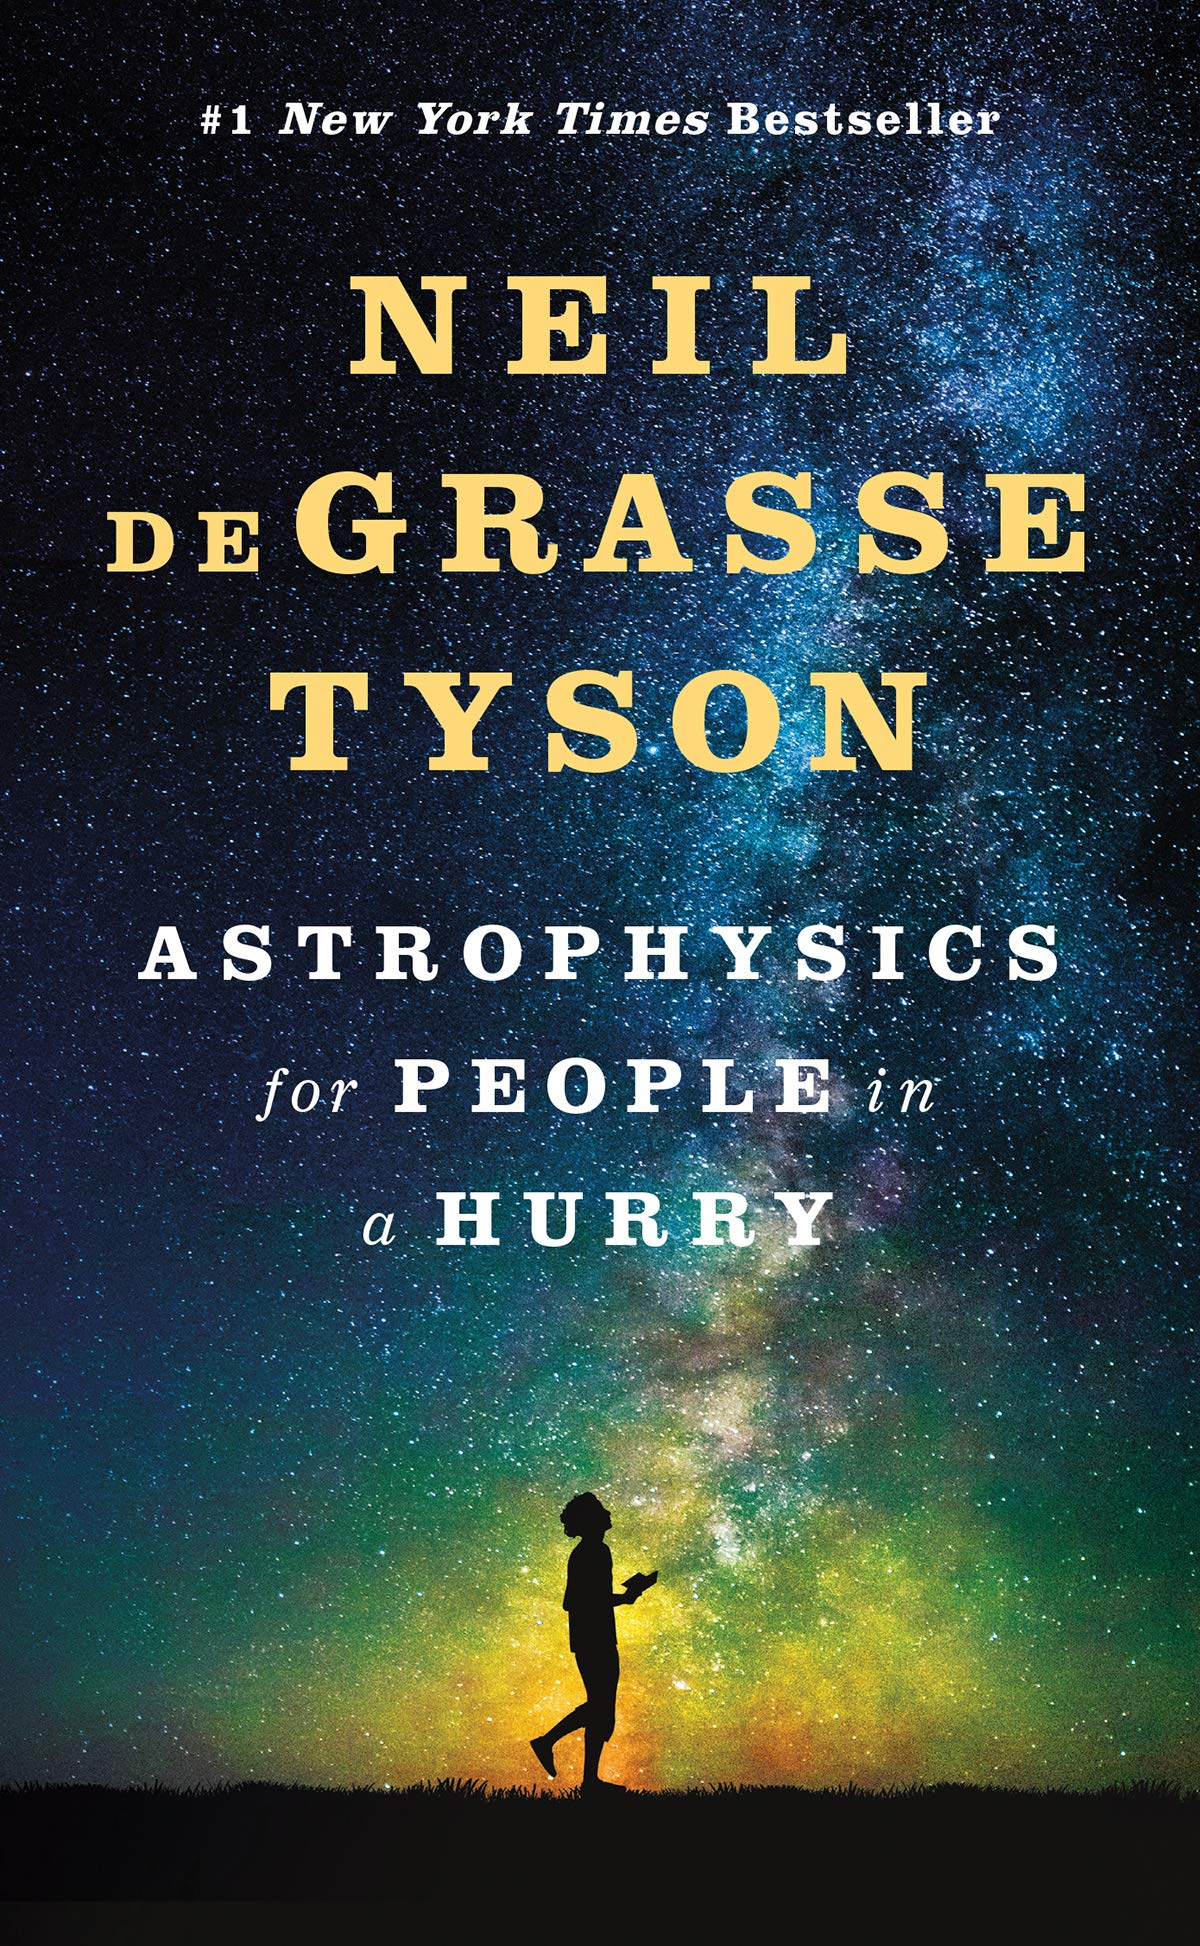 Astrophysics for People in a Hurry (Astrophysics for People in a Hurry Series)